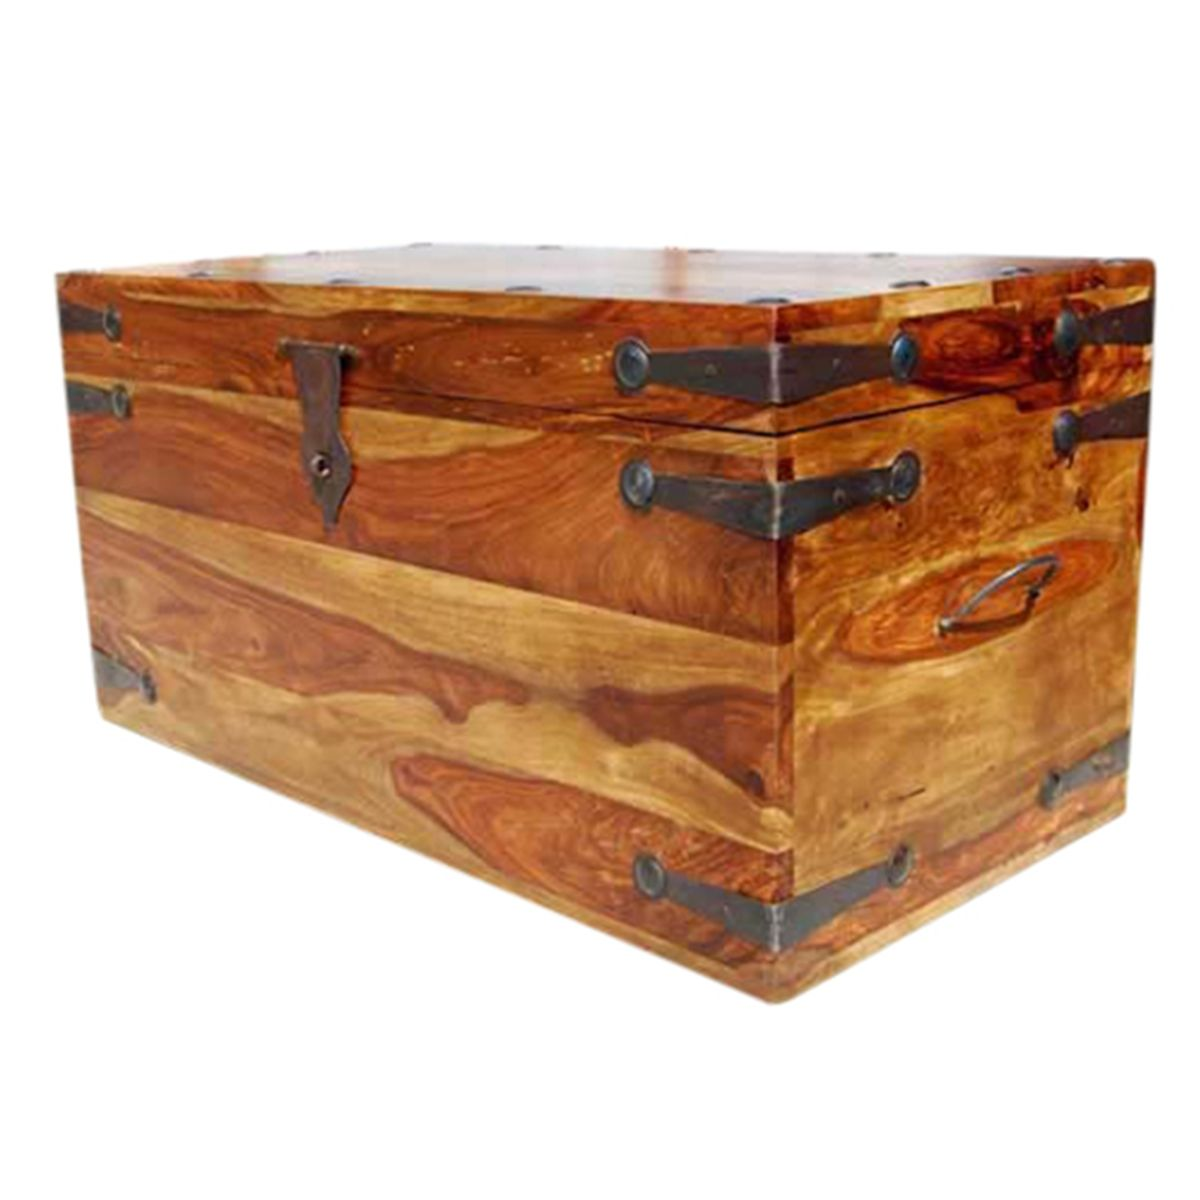 Solid Wood Dallas Trunk Coffee Table with Wrought Iron ...